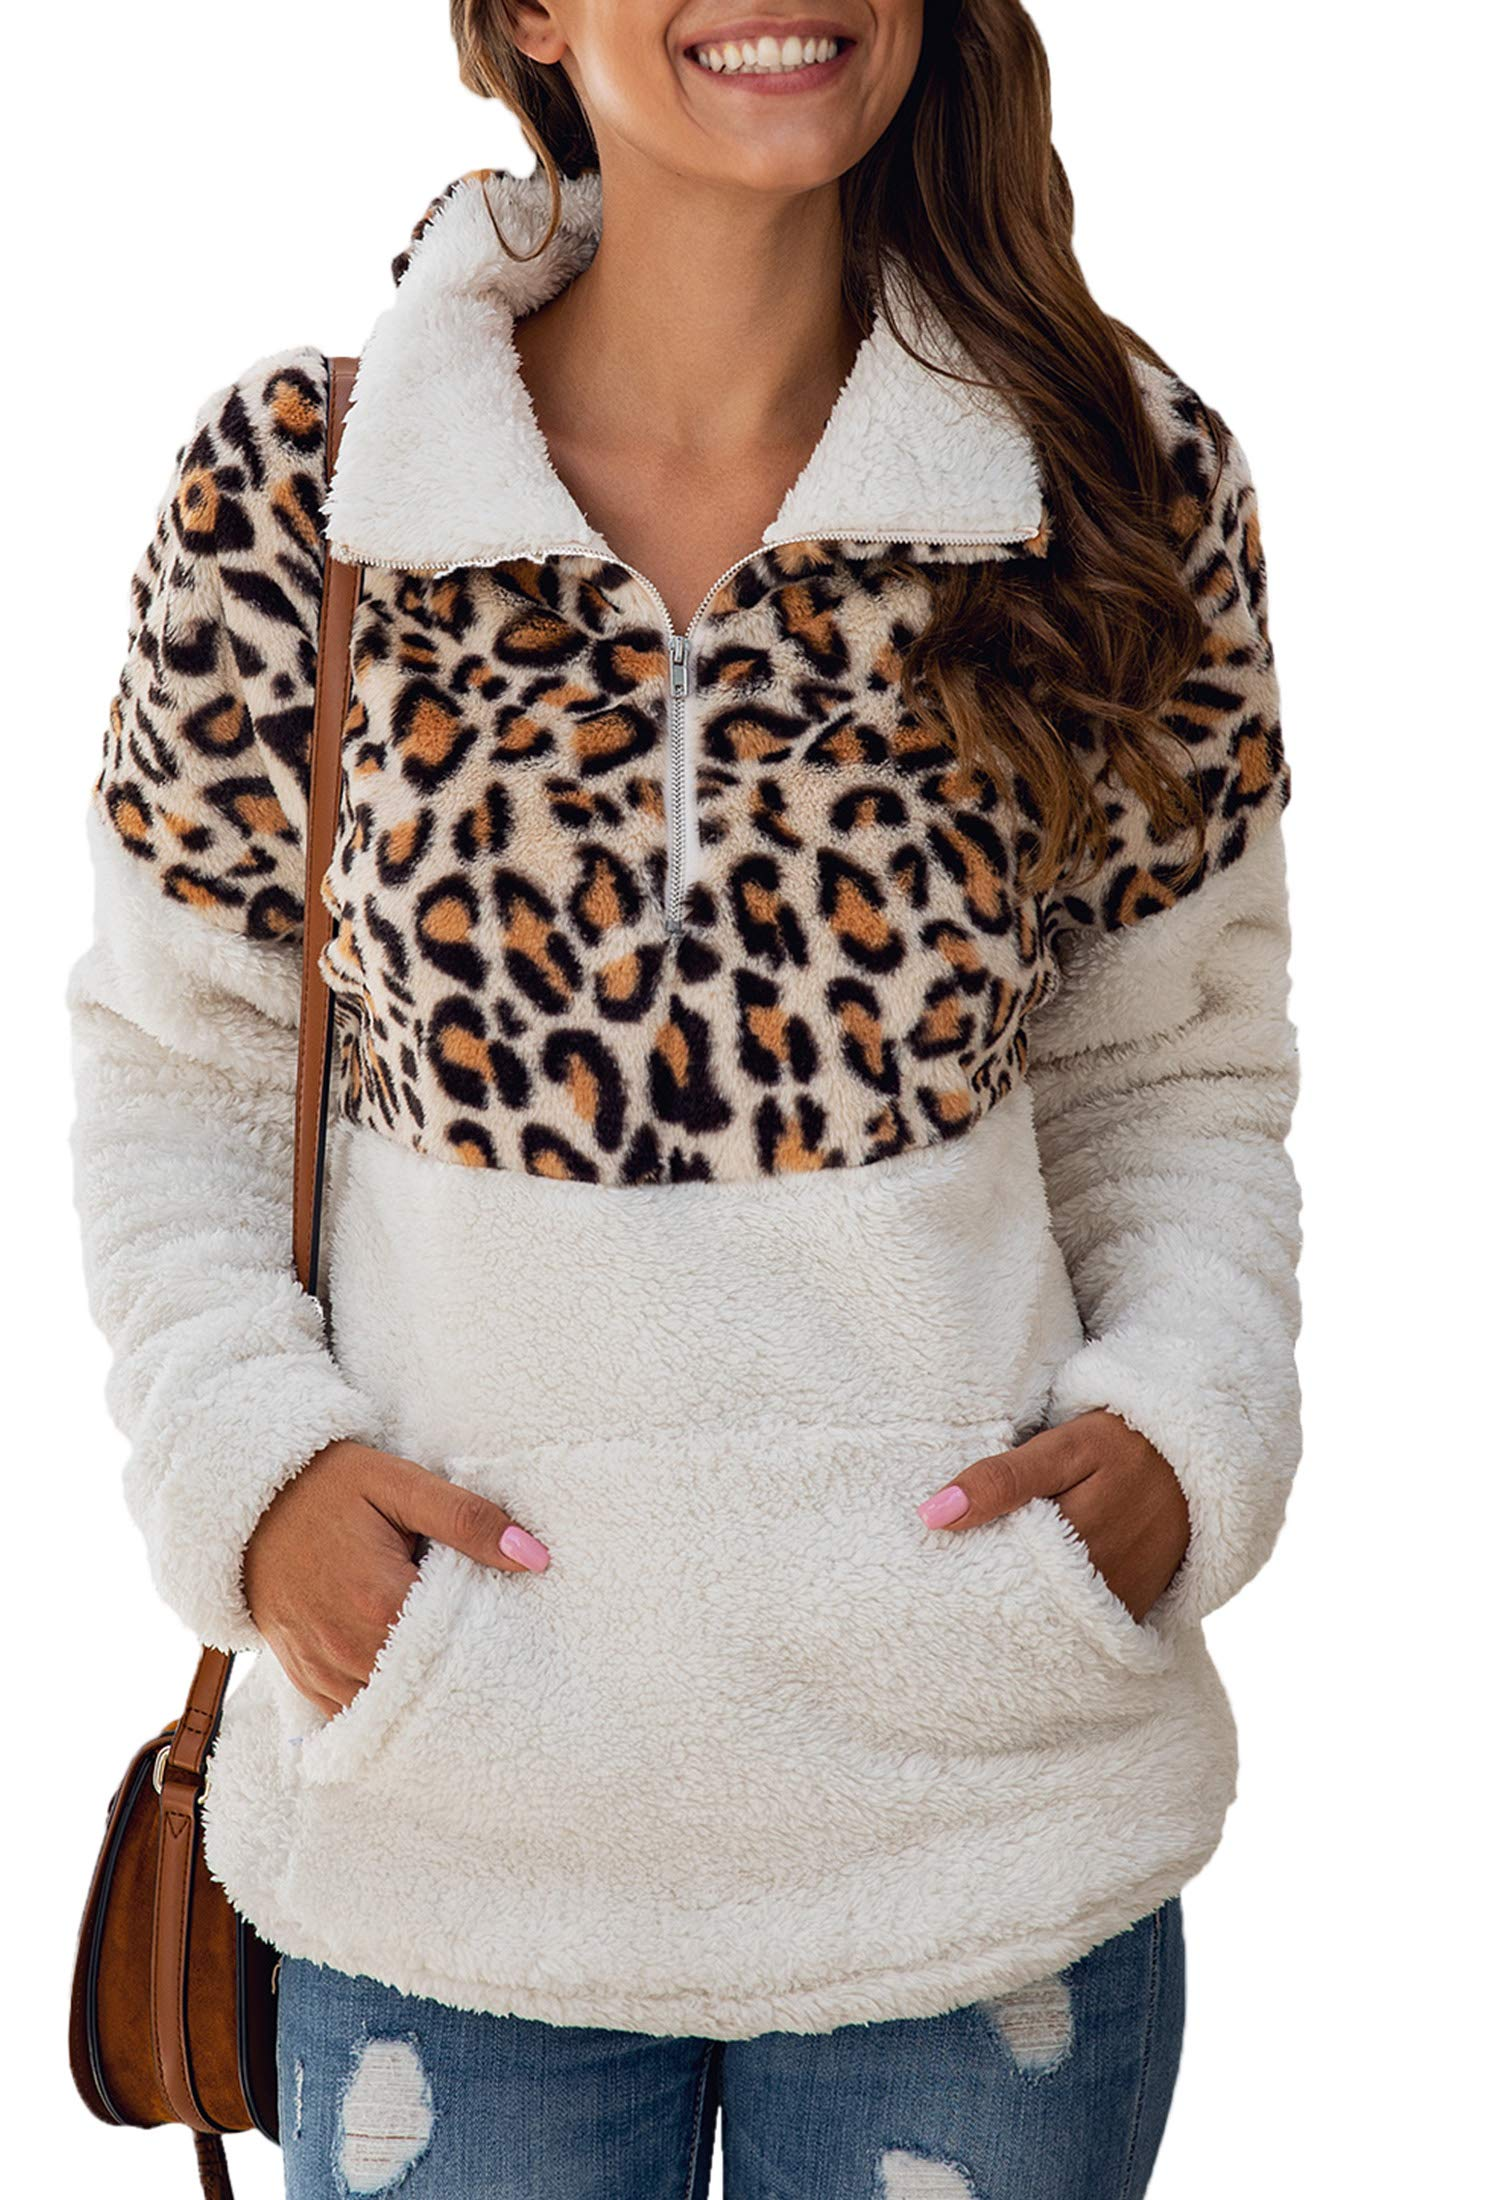 Angashion Womens Long Sleeve Half Zip Up Warm Fuzzy Leopard Print Patchwork Fleece Pullover Tops with Pocket for Winter 357White M by Angashion